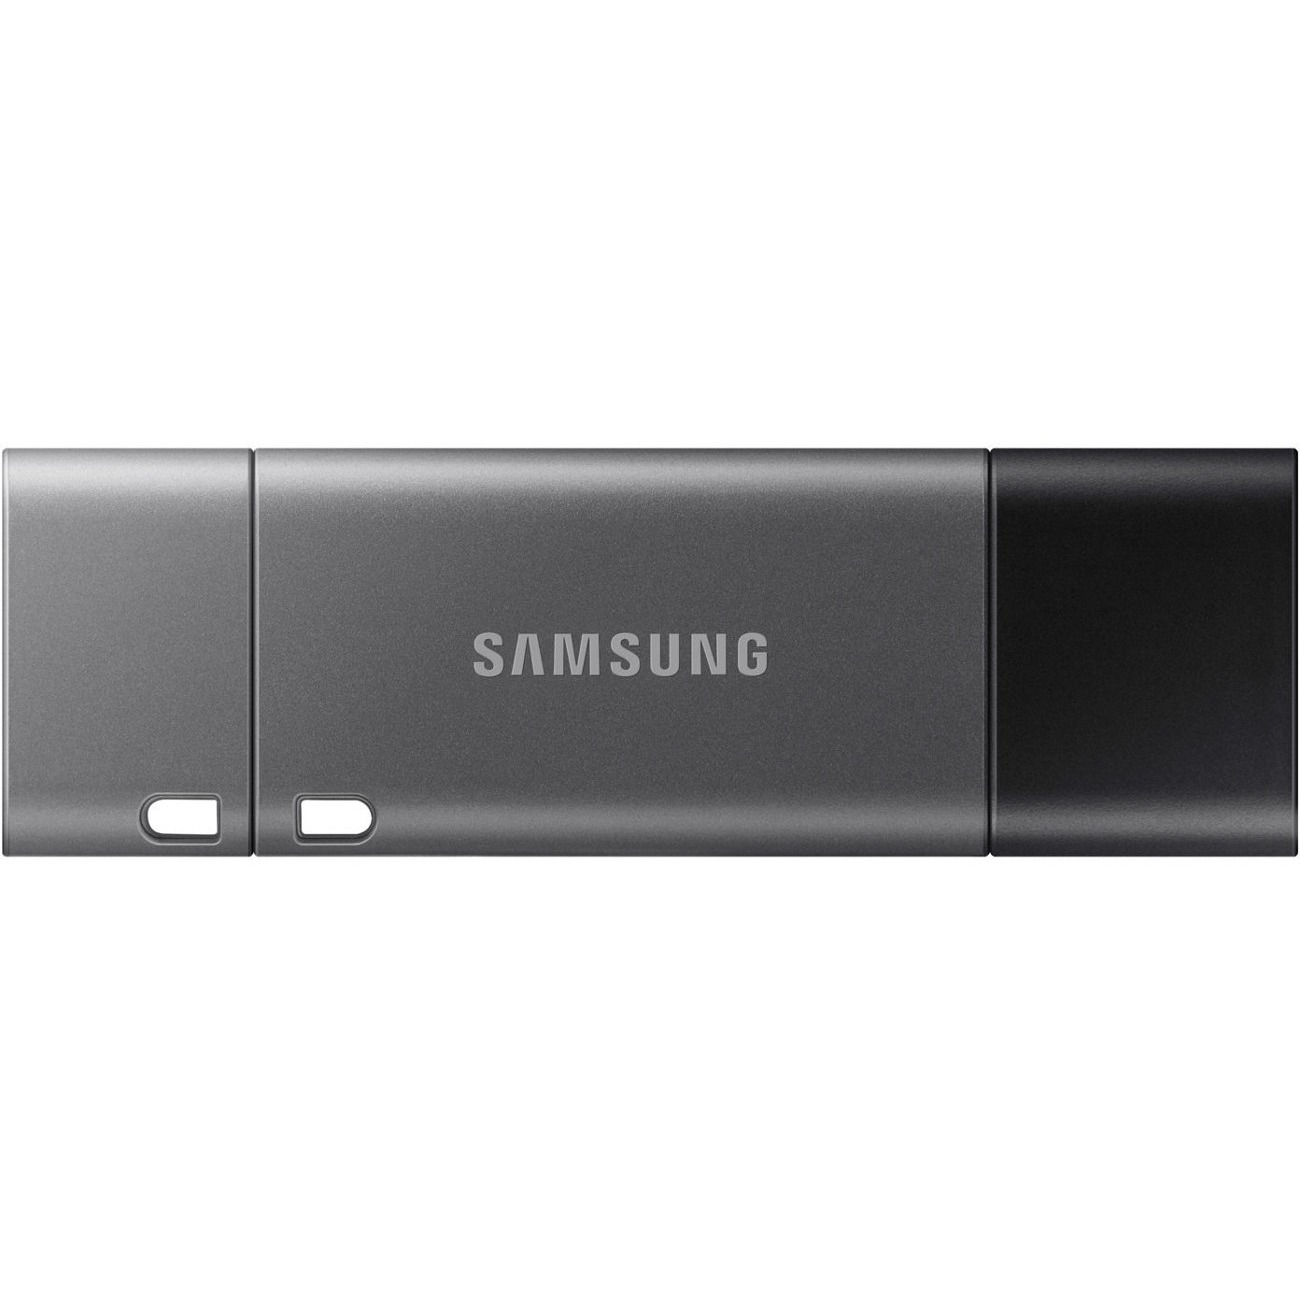 Samsung Duo Plus 128 GB USB 3.1 Type A, USB 3.1 Type C Flash Drive - Black